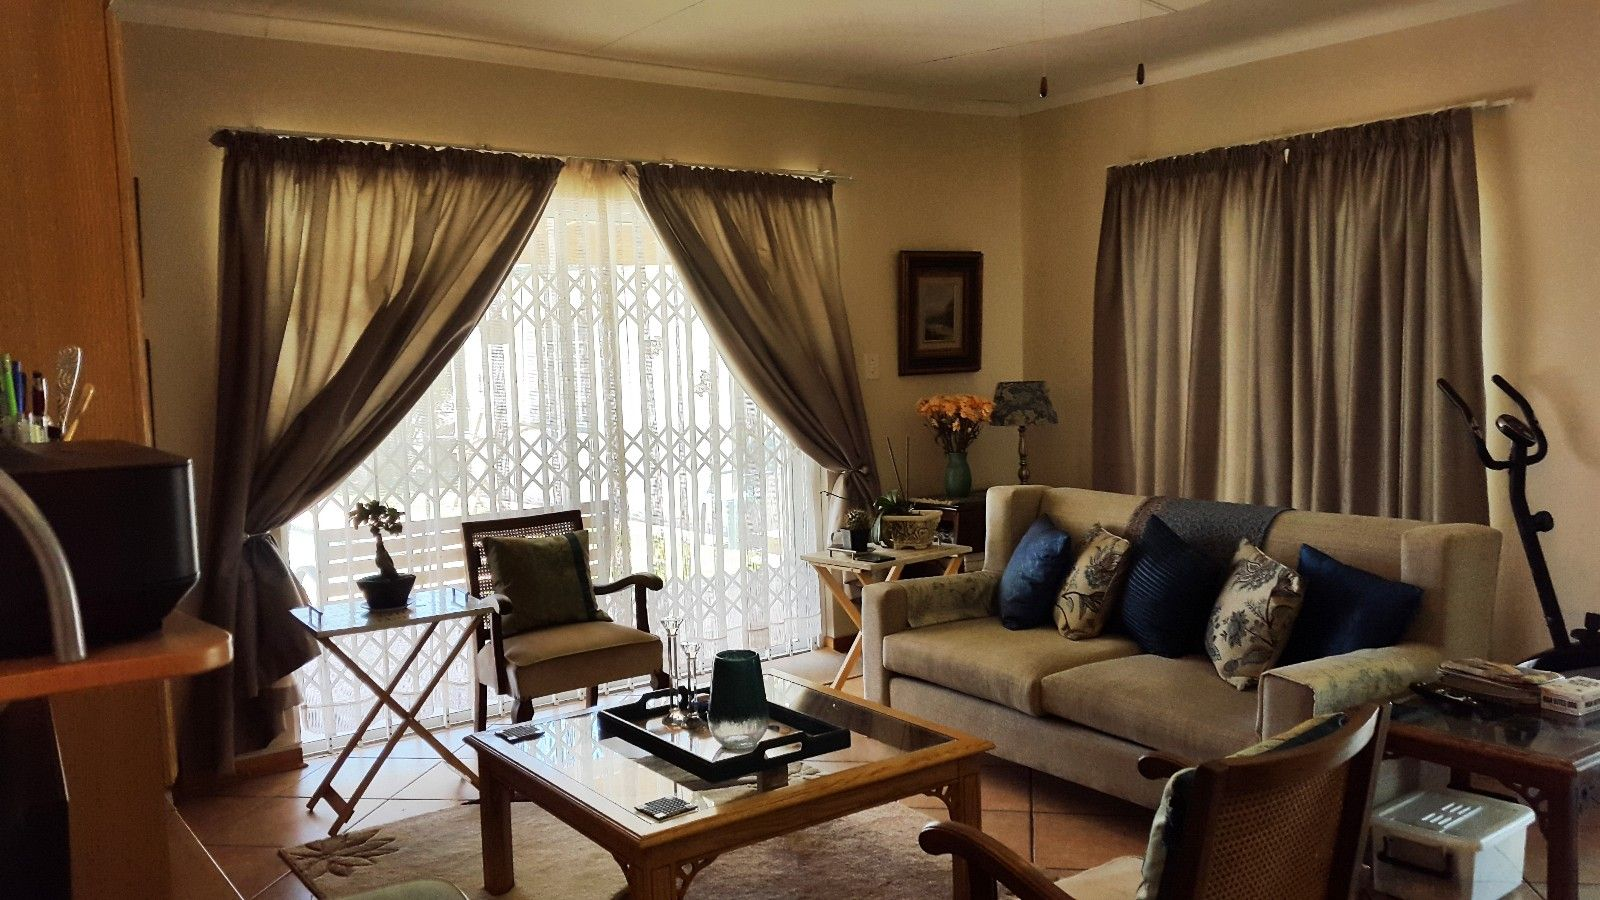 Potchefstroom Central property for sale. Ref No: 13460775. Picture no 18